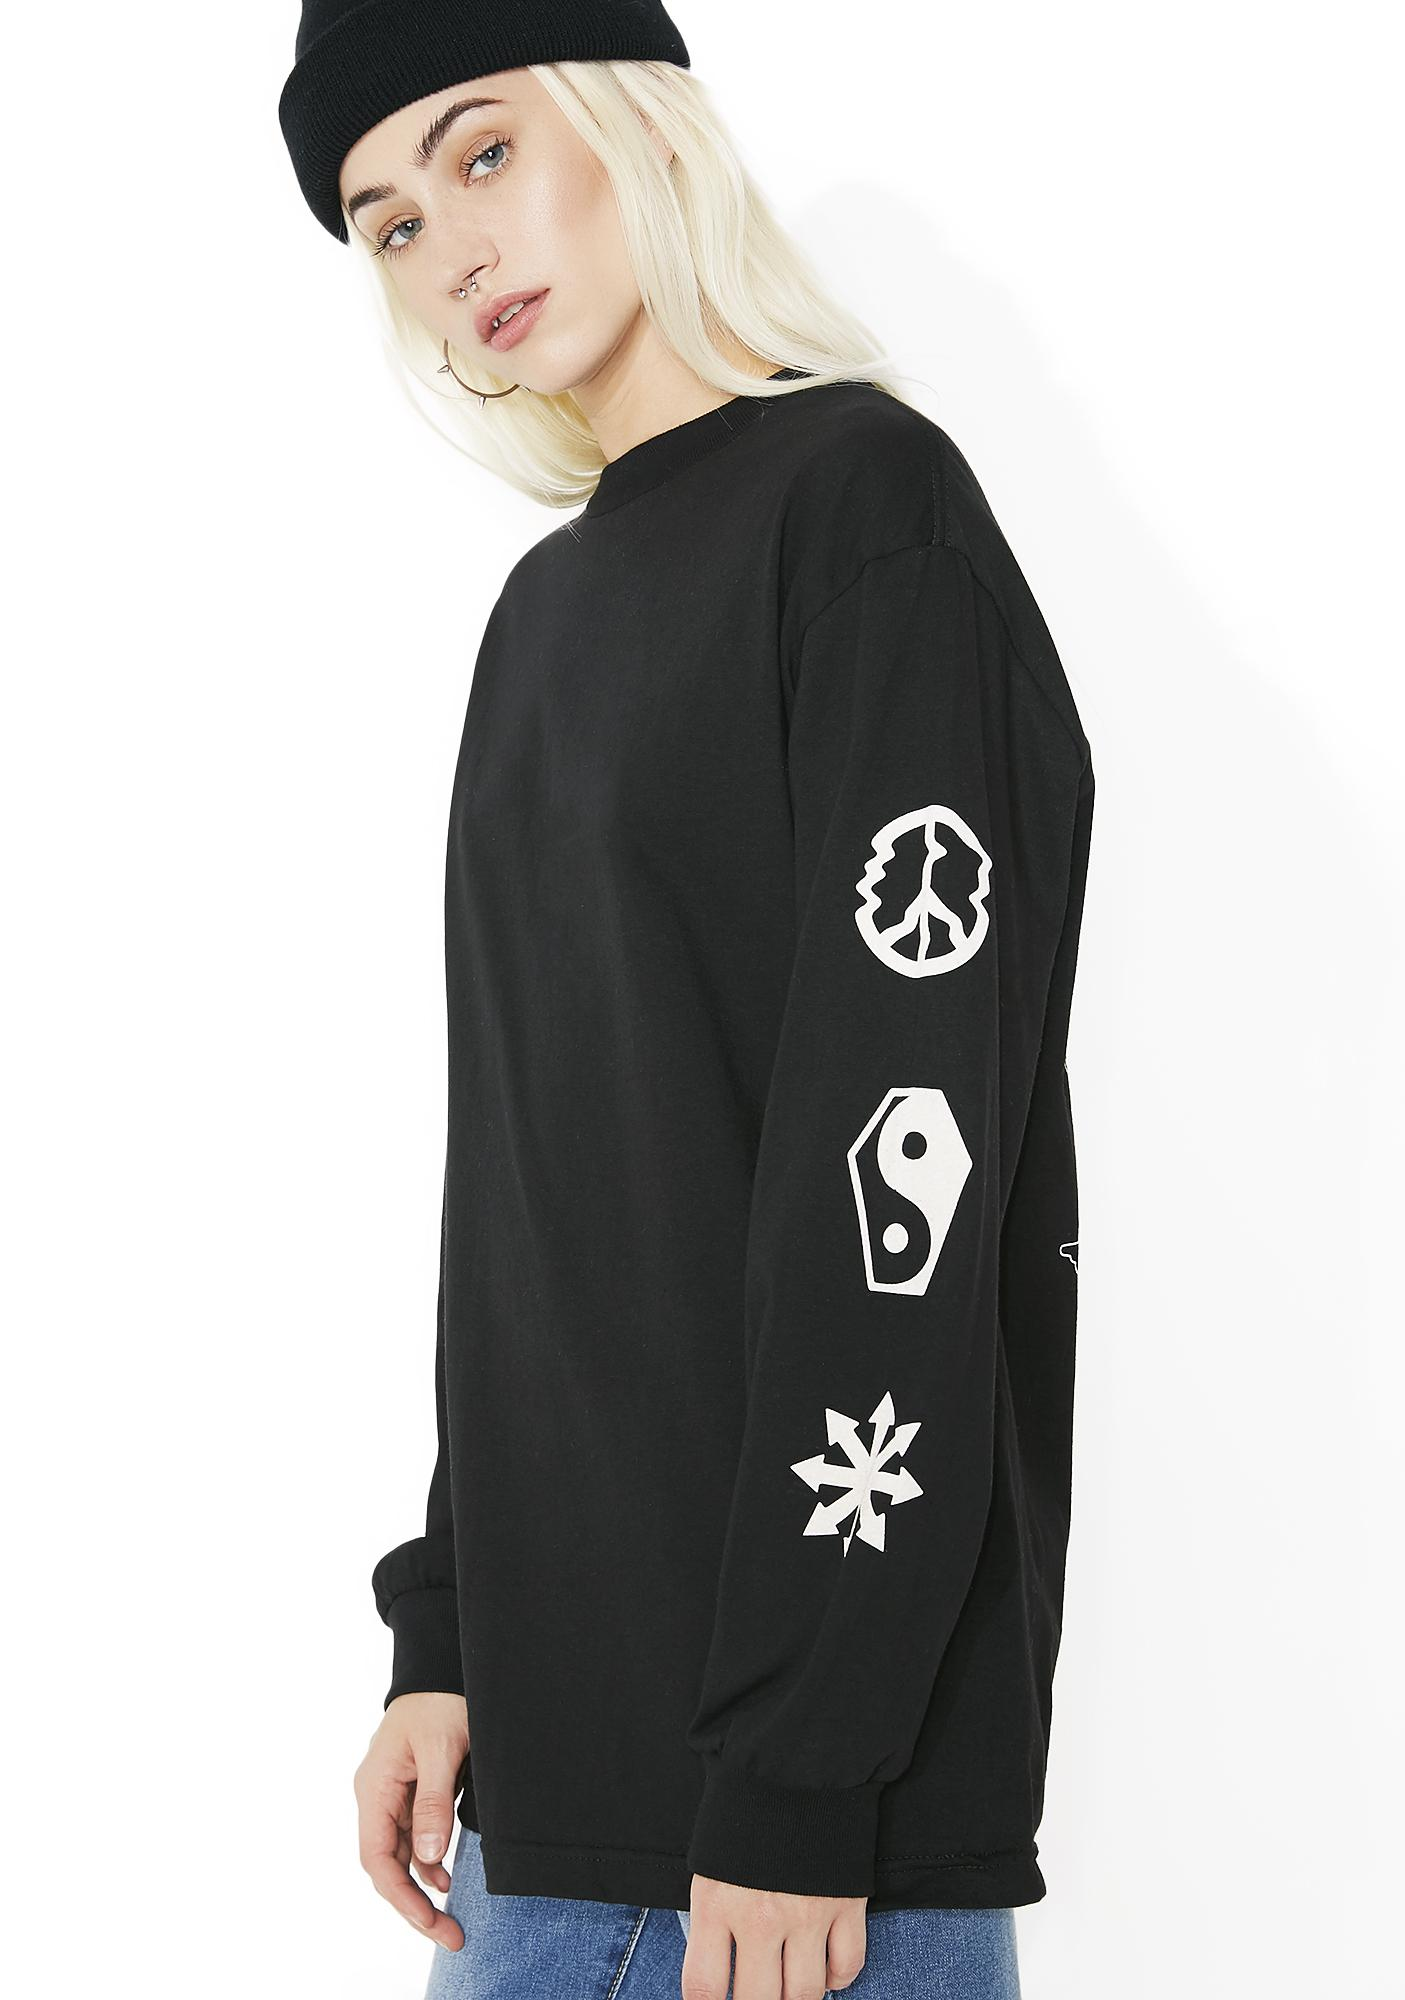 Sketchy Tank Gone Hesh Long Sleeve Tee